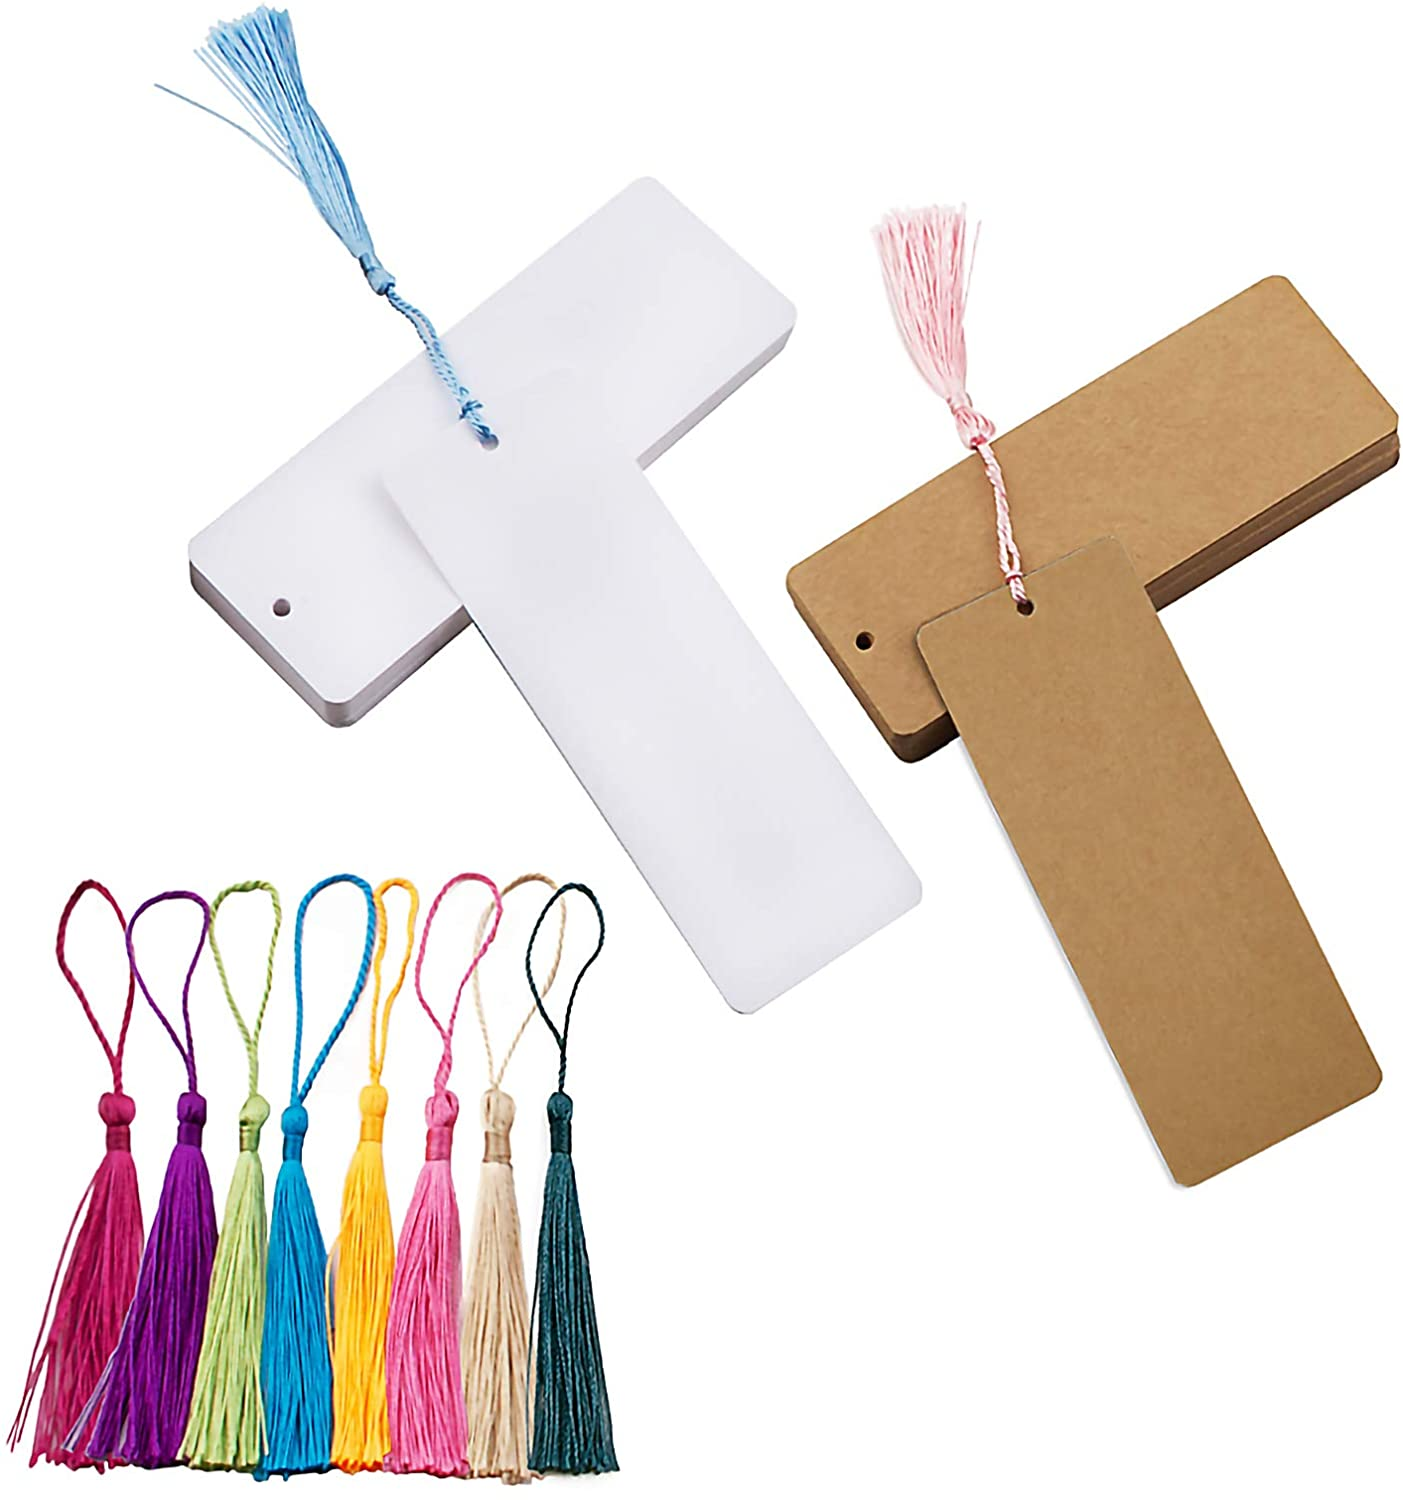 WANDIC Blank Bookmarks, Cardstock Bookmarks with Holes, 60 Pcs White Bookmarks & Brown Bookmarks and 60 Pcs Colorful Tassels for DIY Projects and Gift Supplies